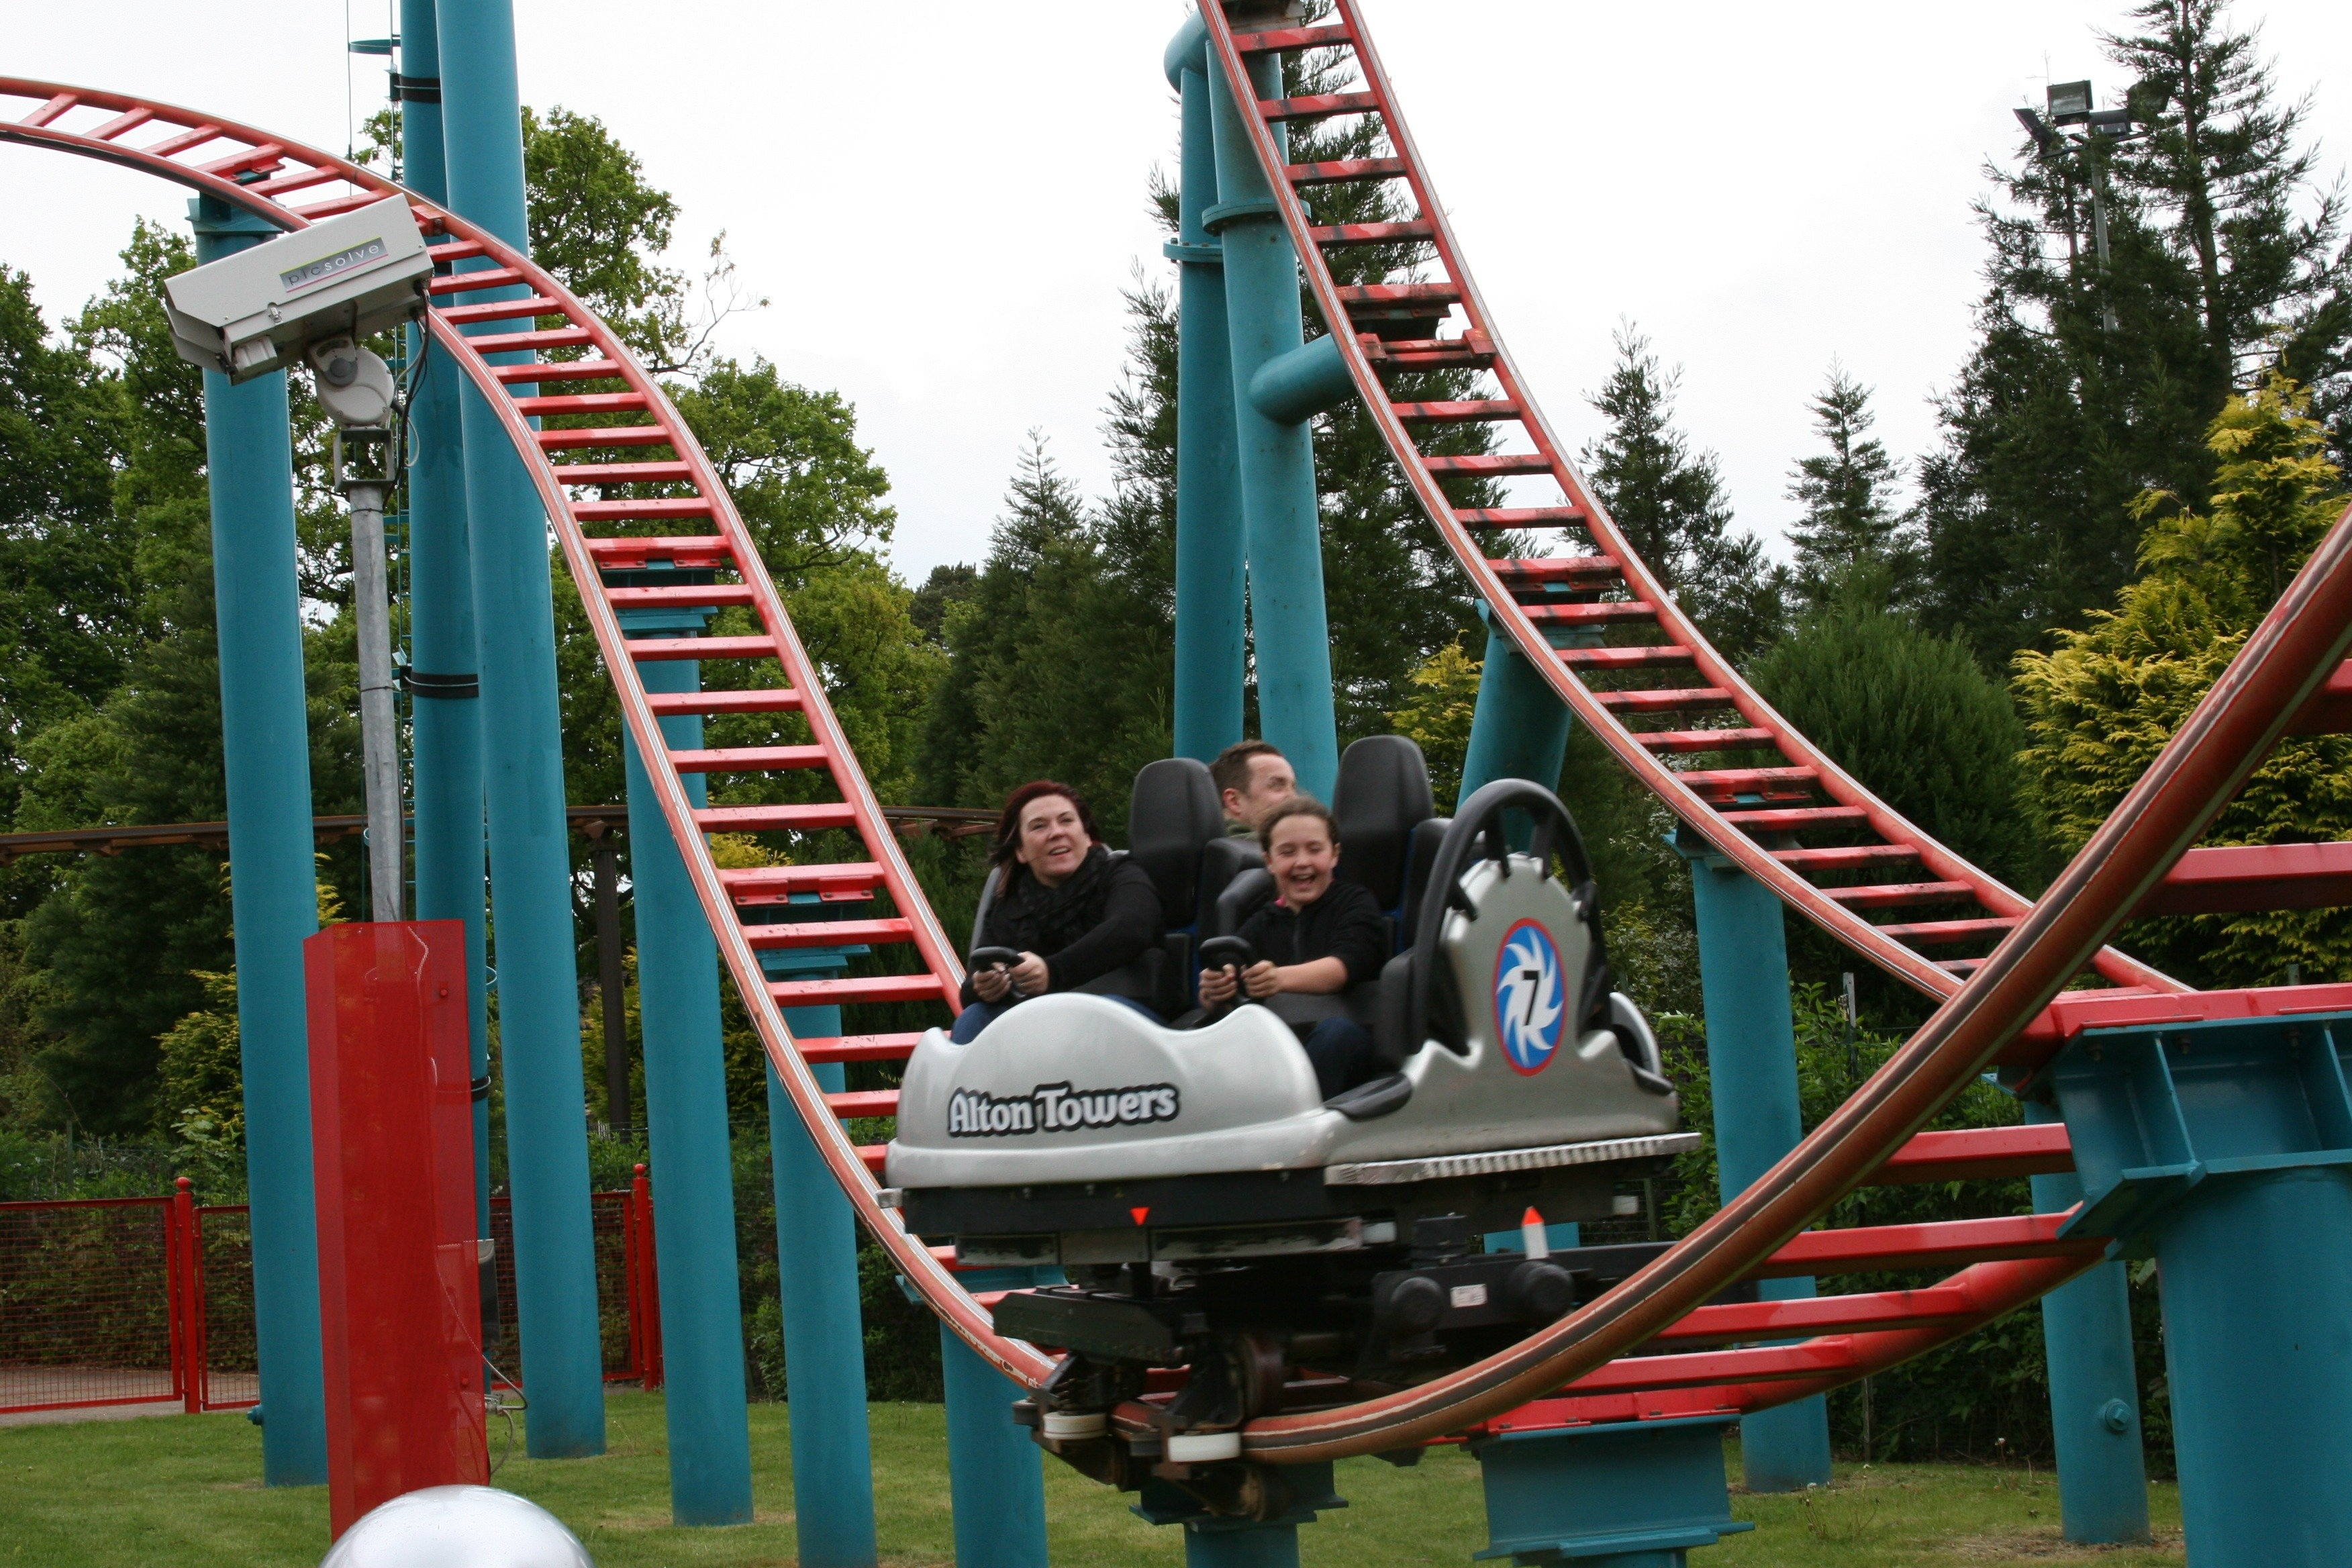 Alton towers 4